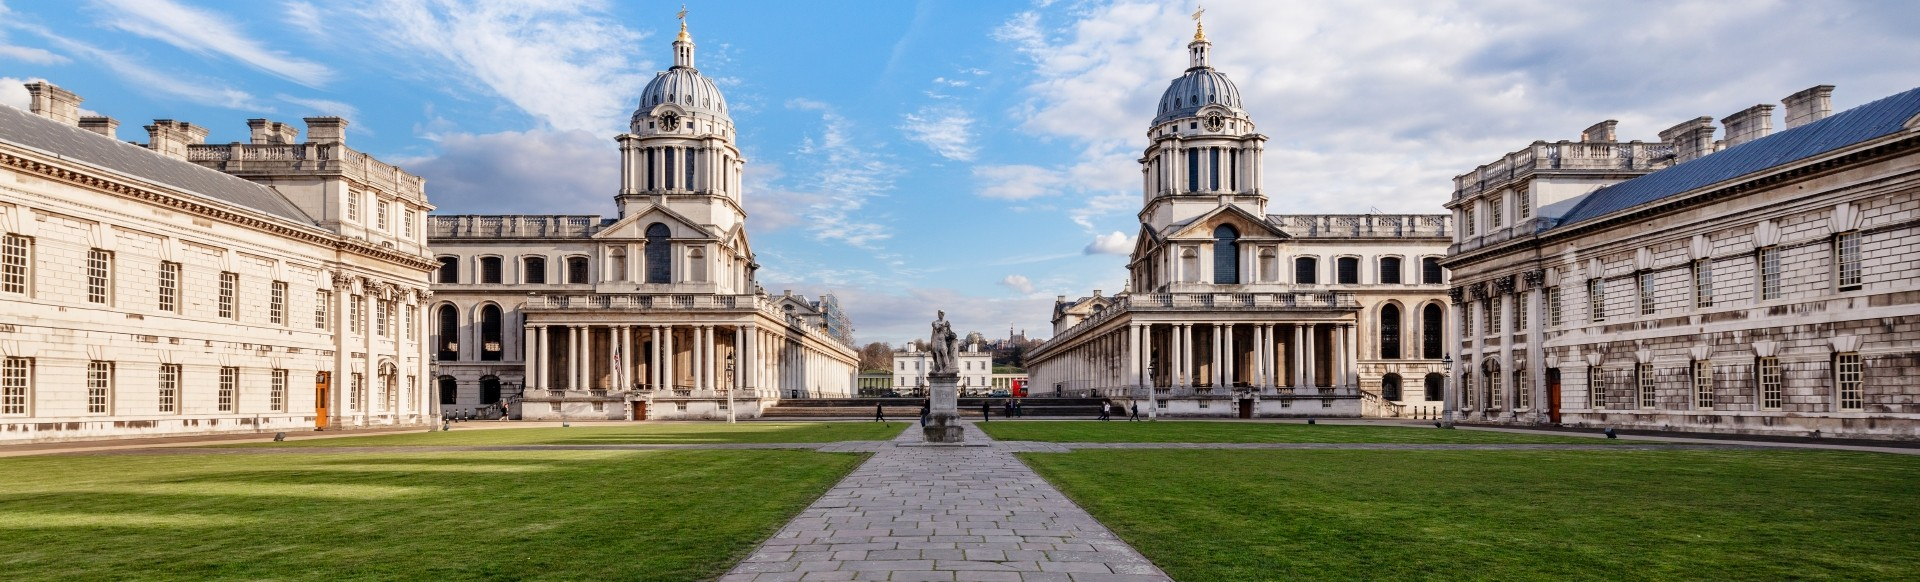 The Old Royal Naval College building on a sunny day in Greenwich.